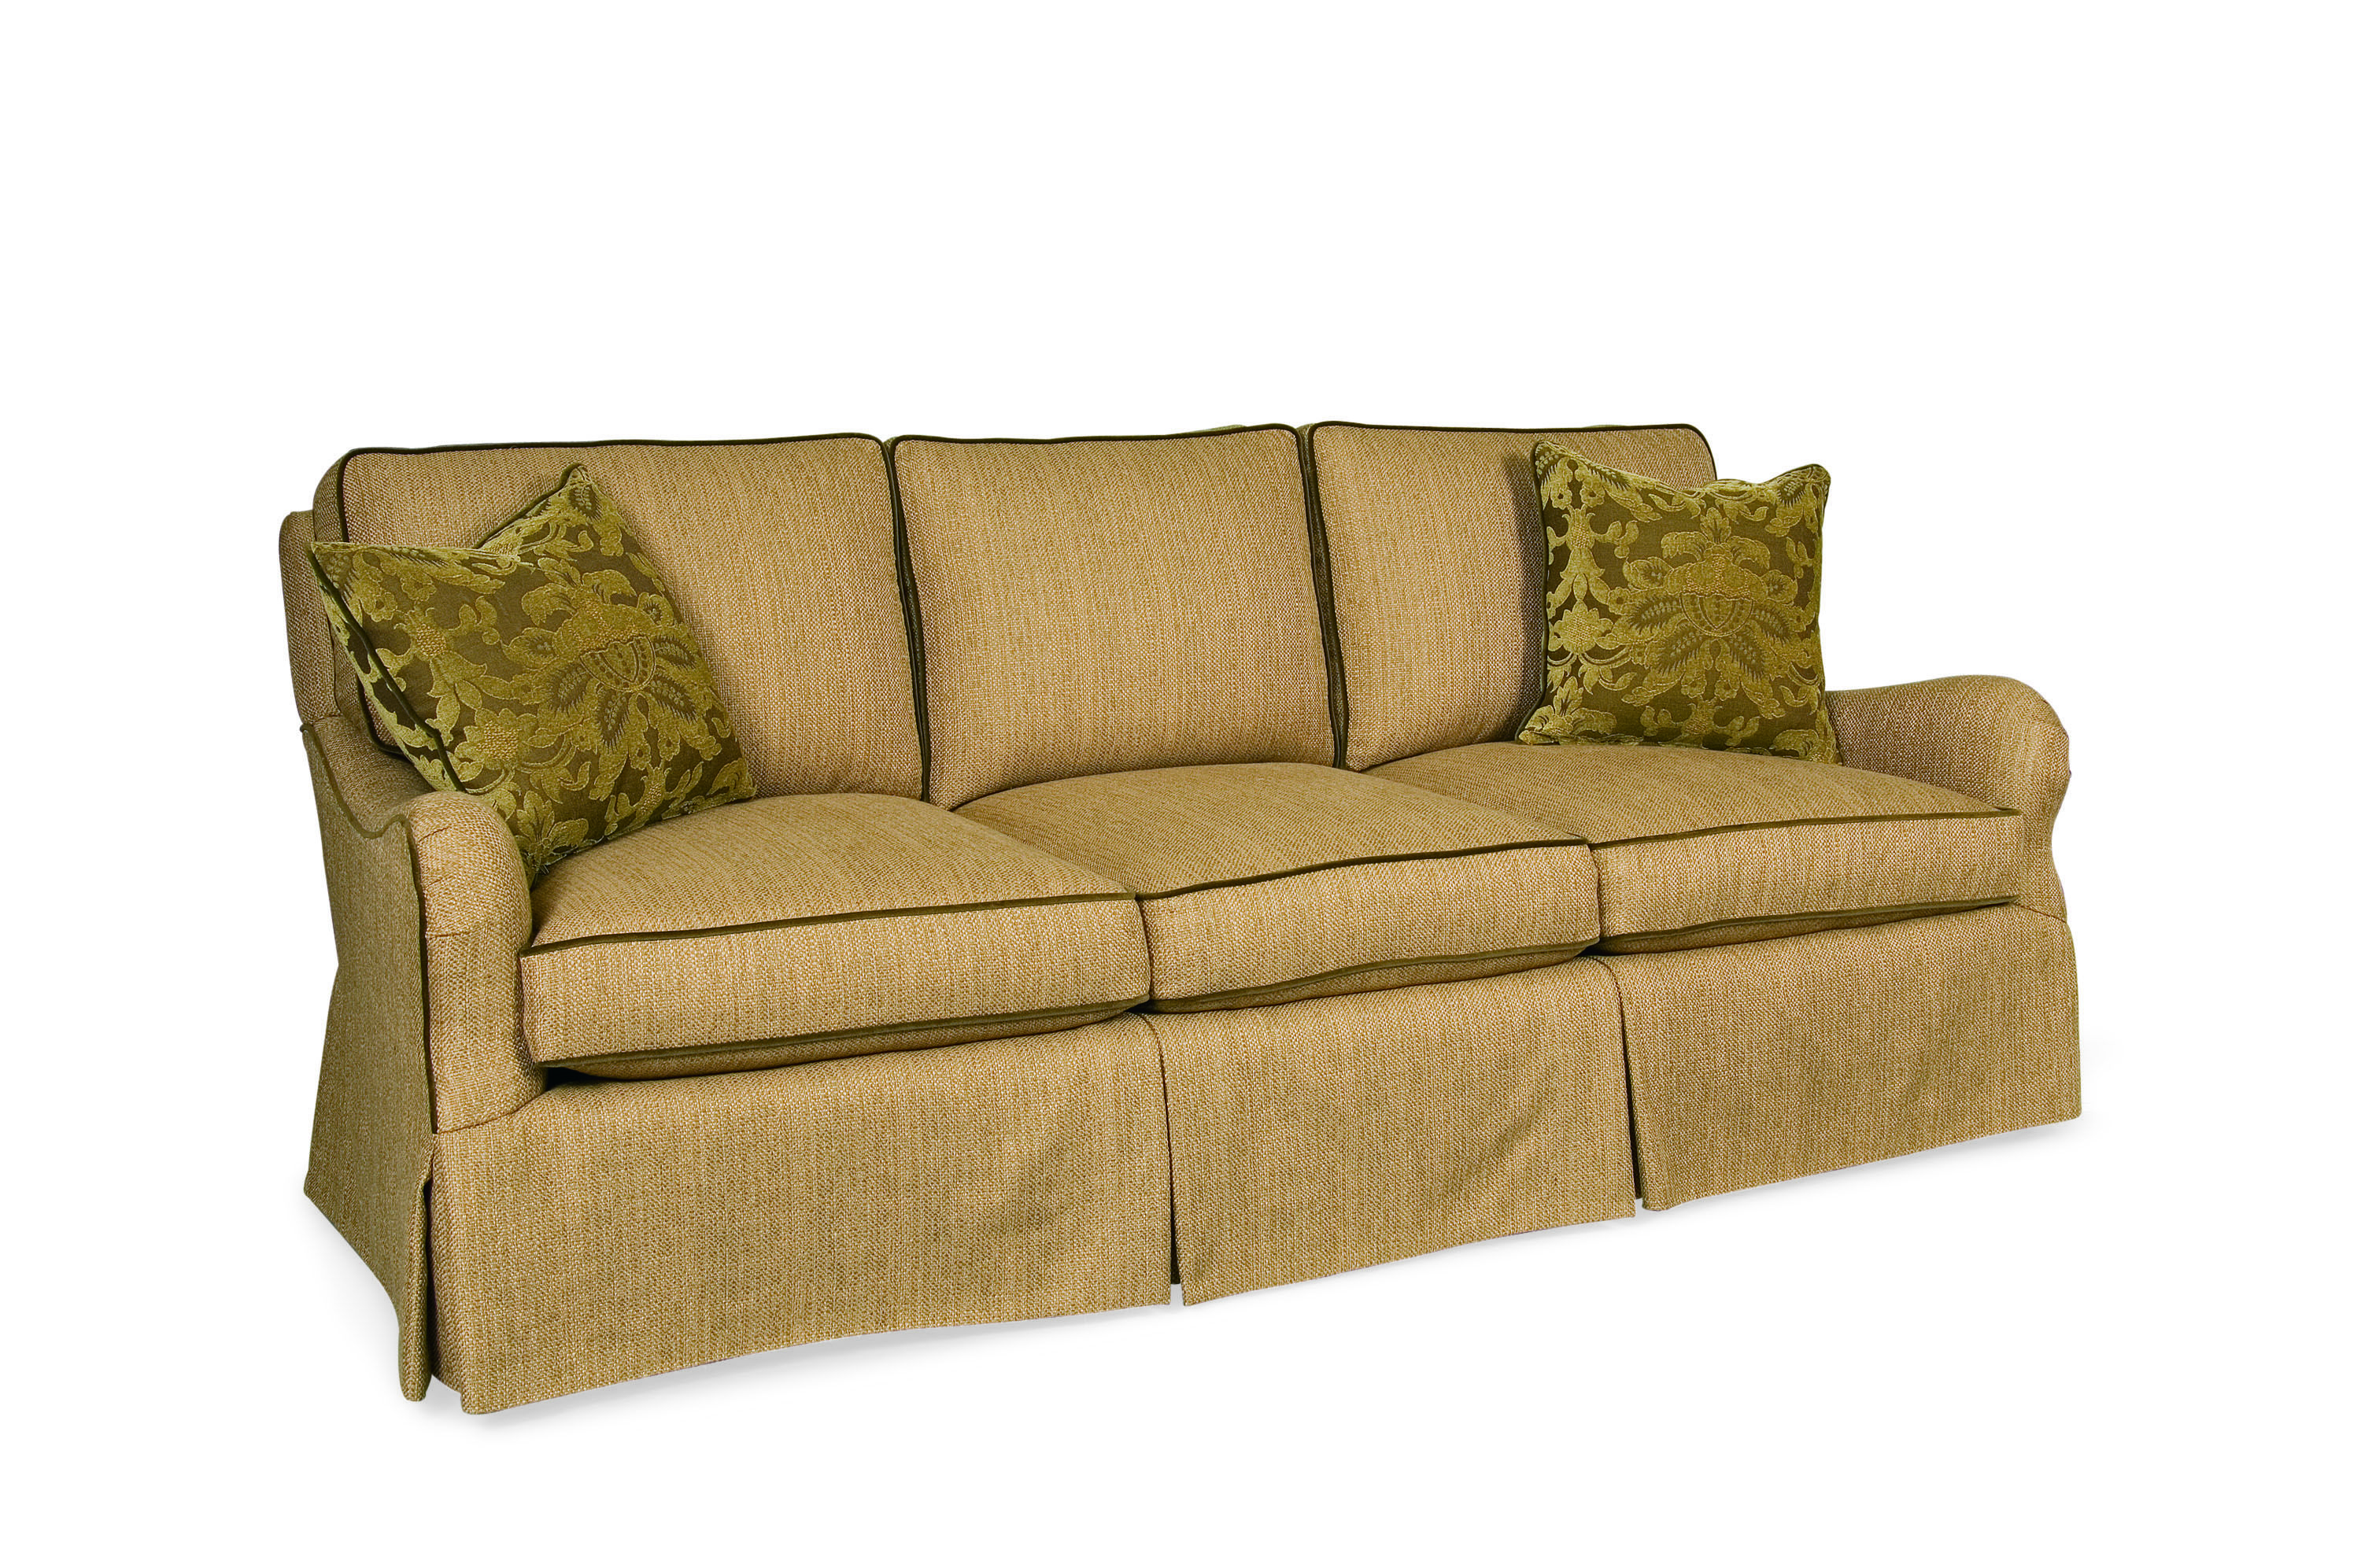 Lee Industries Sofa